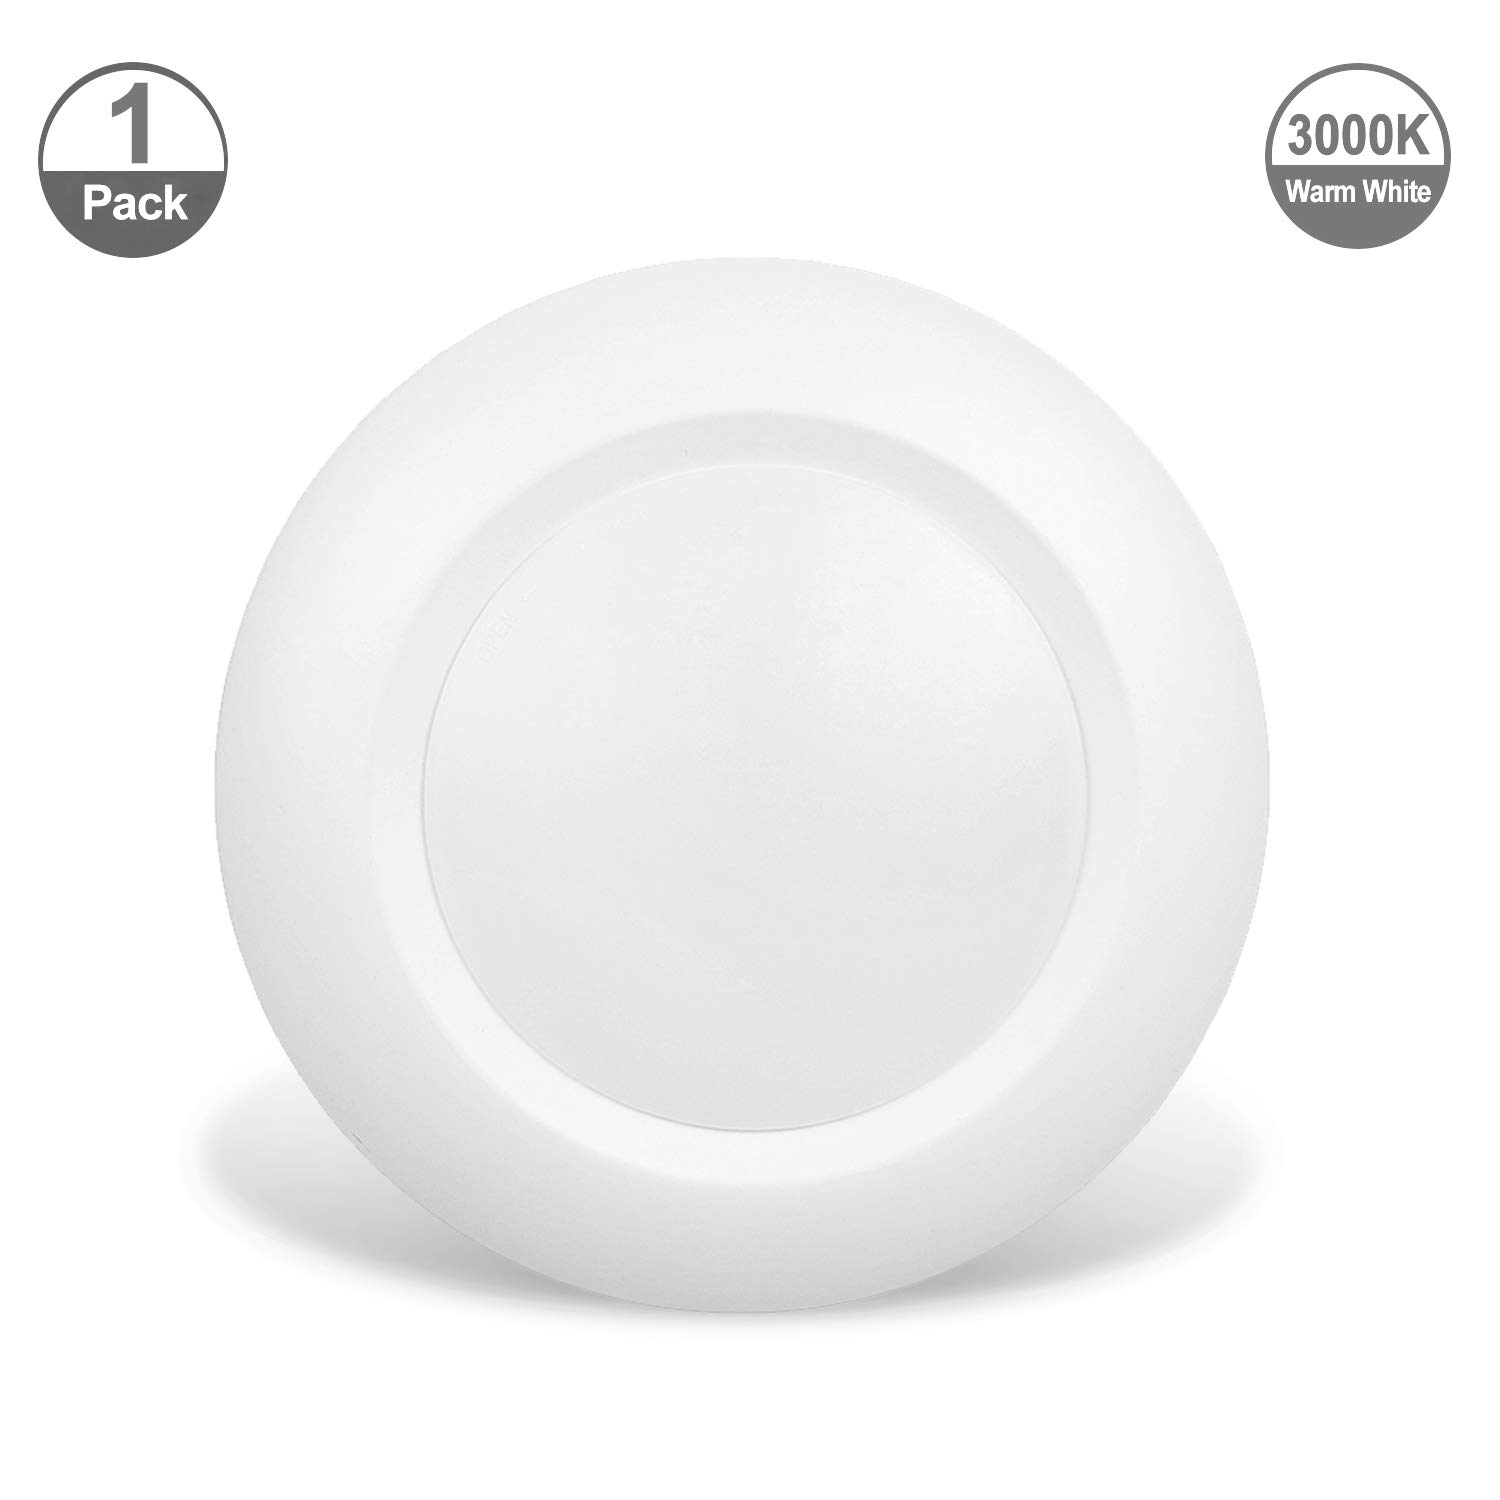 Jullison 4 inch led low profile recessed surface mount disk light round 10w 600 lumens 3000k warm white cri80 dob design dimmable energy